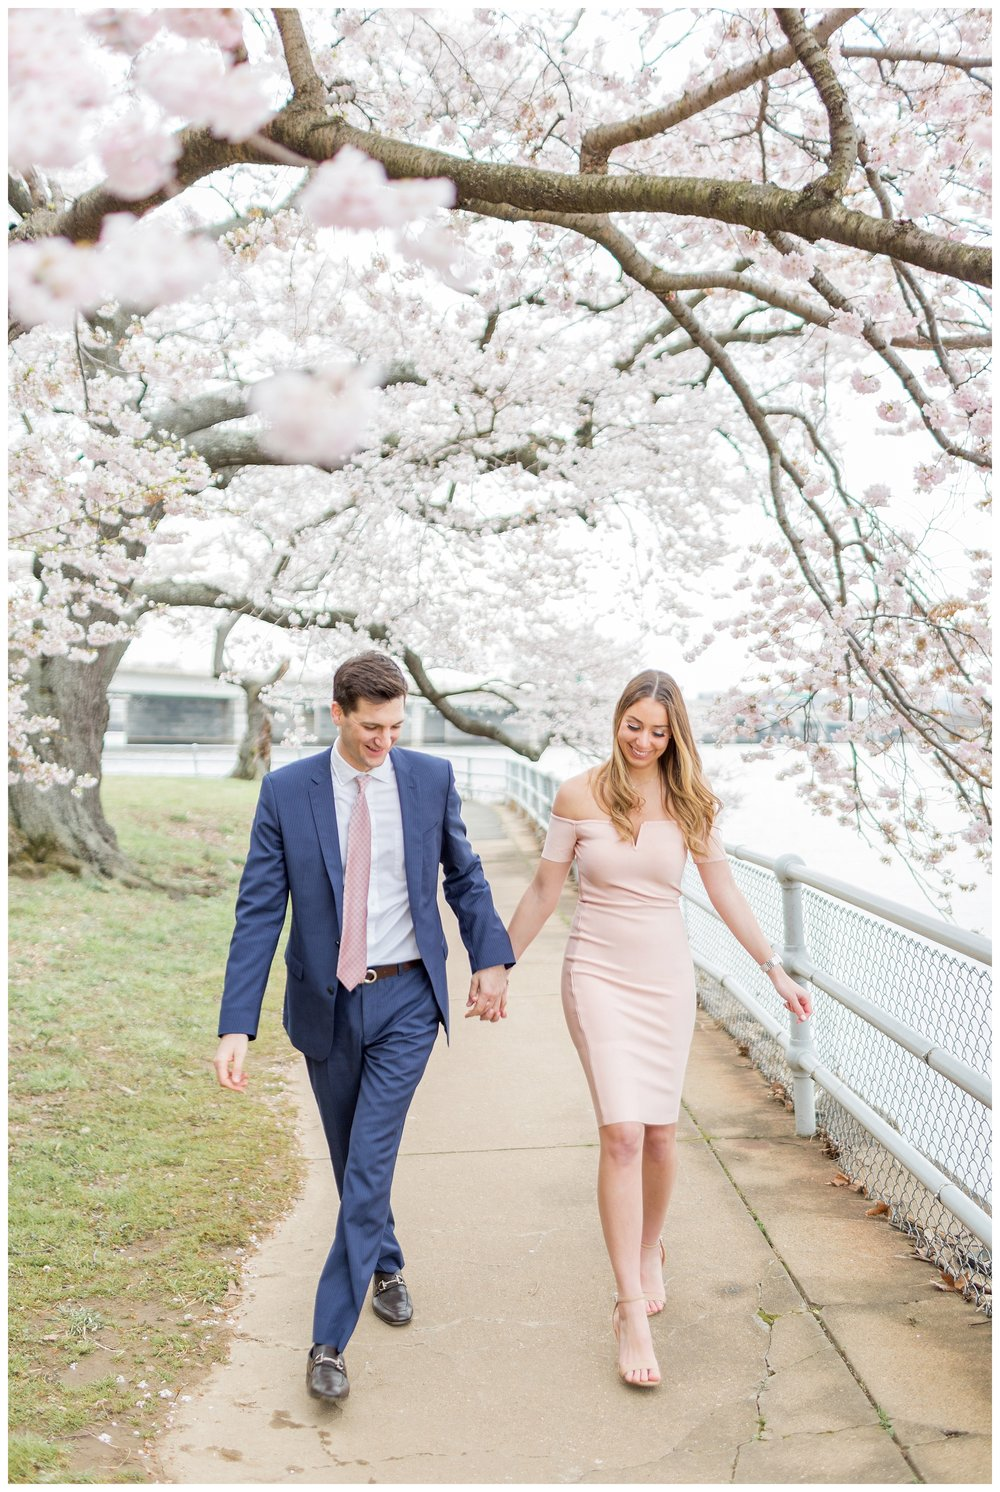 DC+Cherry+Blossom+Engagement+Virginia+Wedding+Photographer_0036.jpg